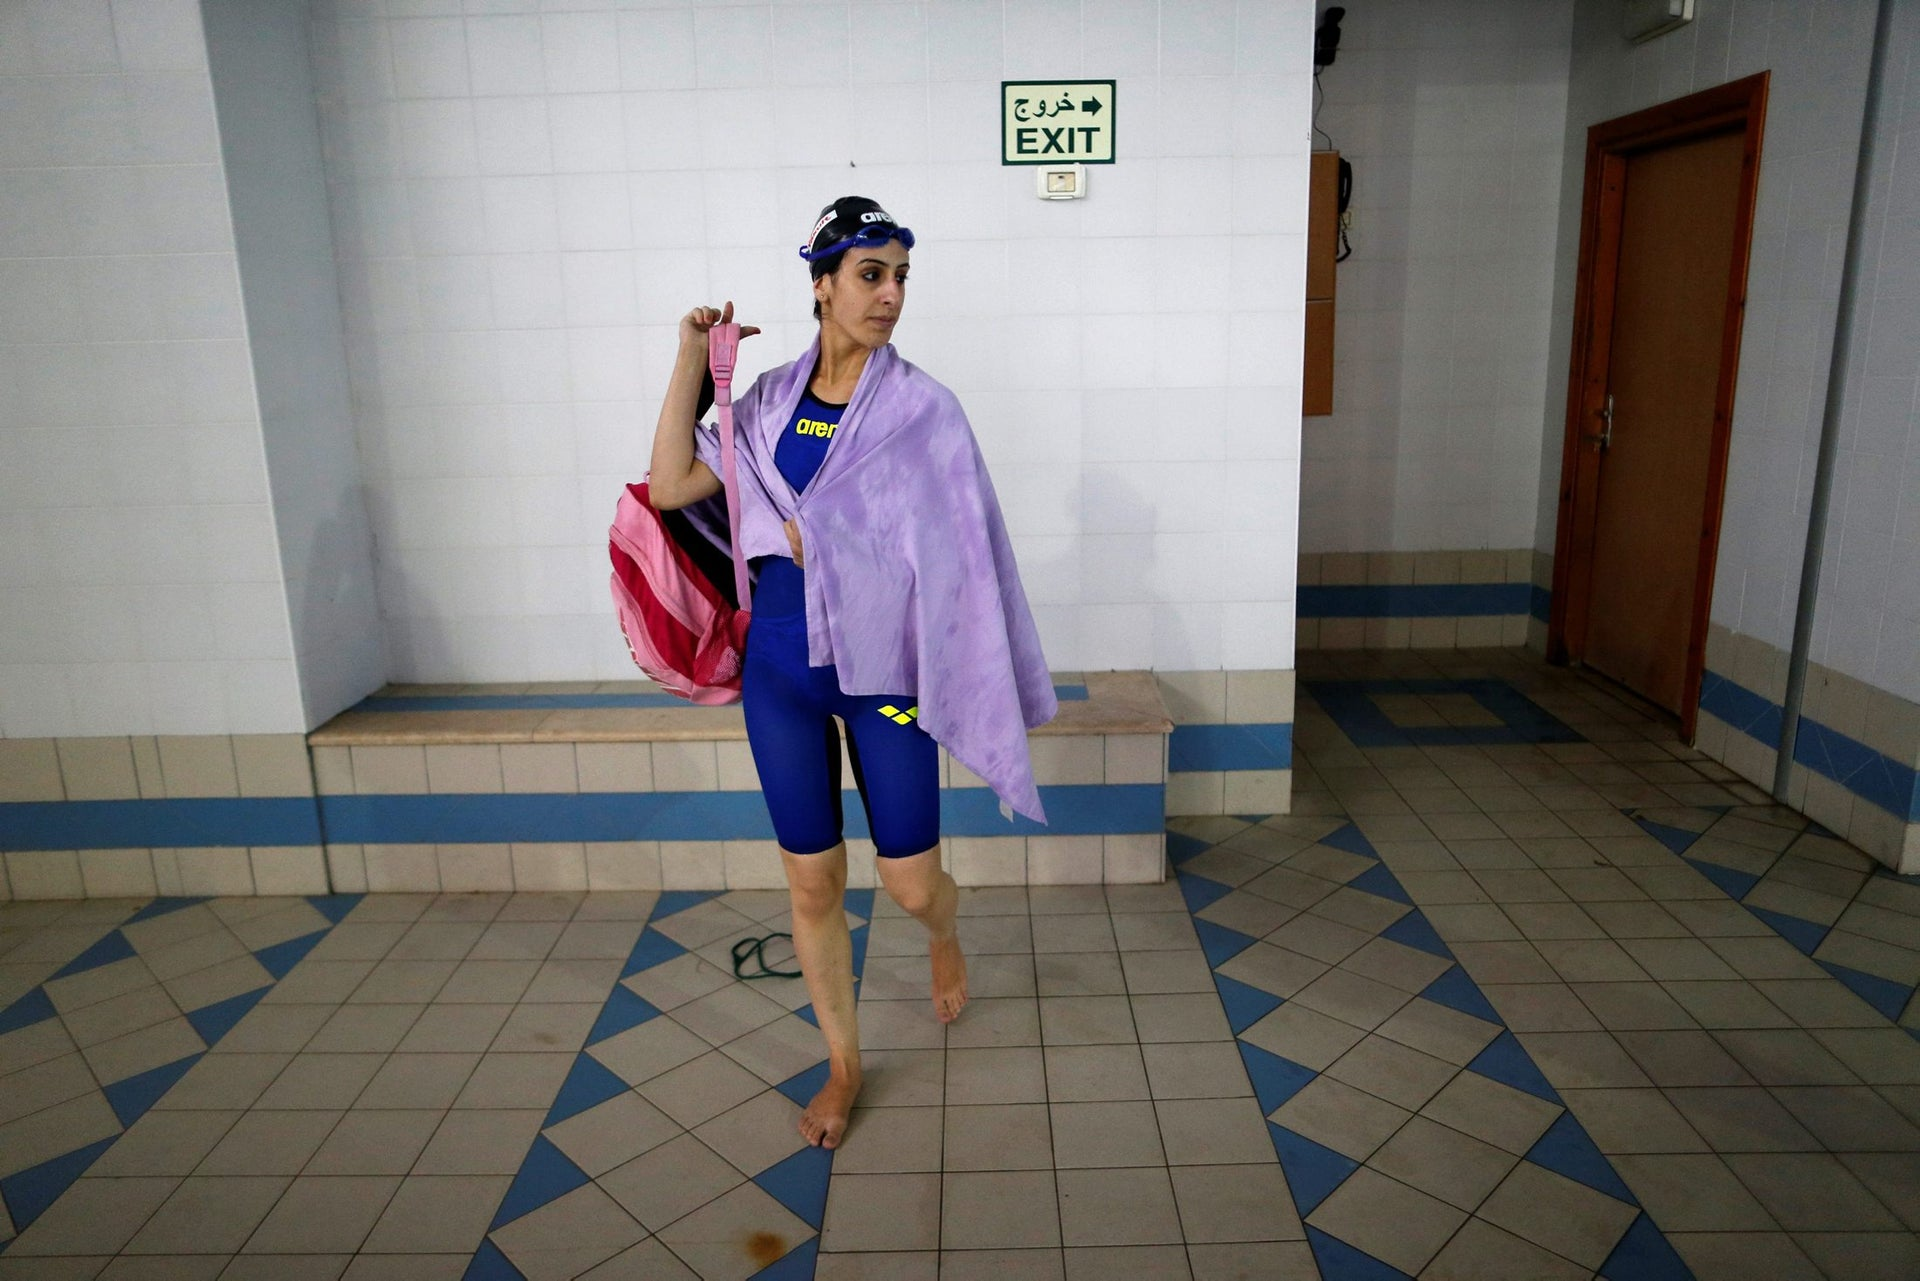 Palestinian swimmer Mary Al-Atrash, 22, who will represent Palestine at the 2016 Rio Olympics, leaves after training in a swimming pool in Beit Sahour, near the West Bank town of Bethlehem June 27, 2016.